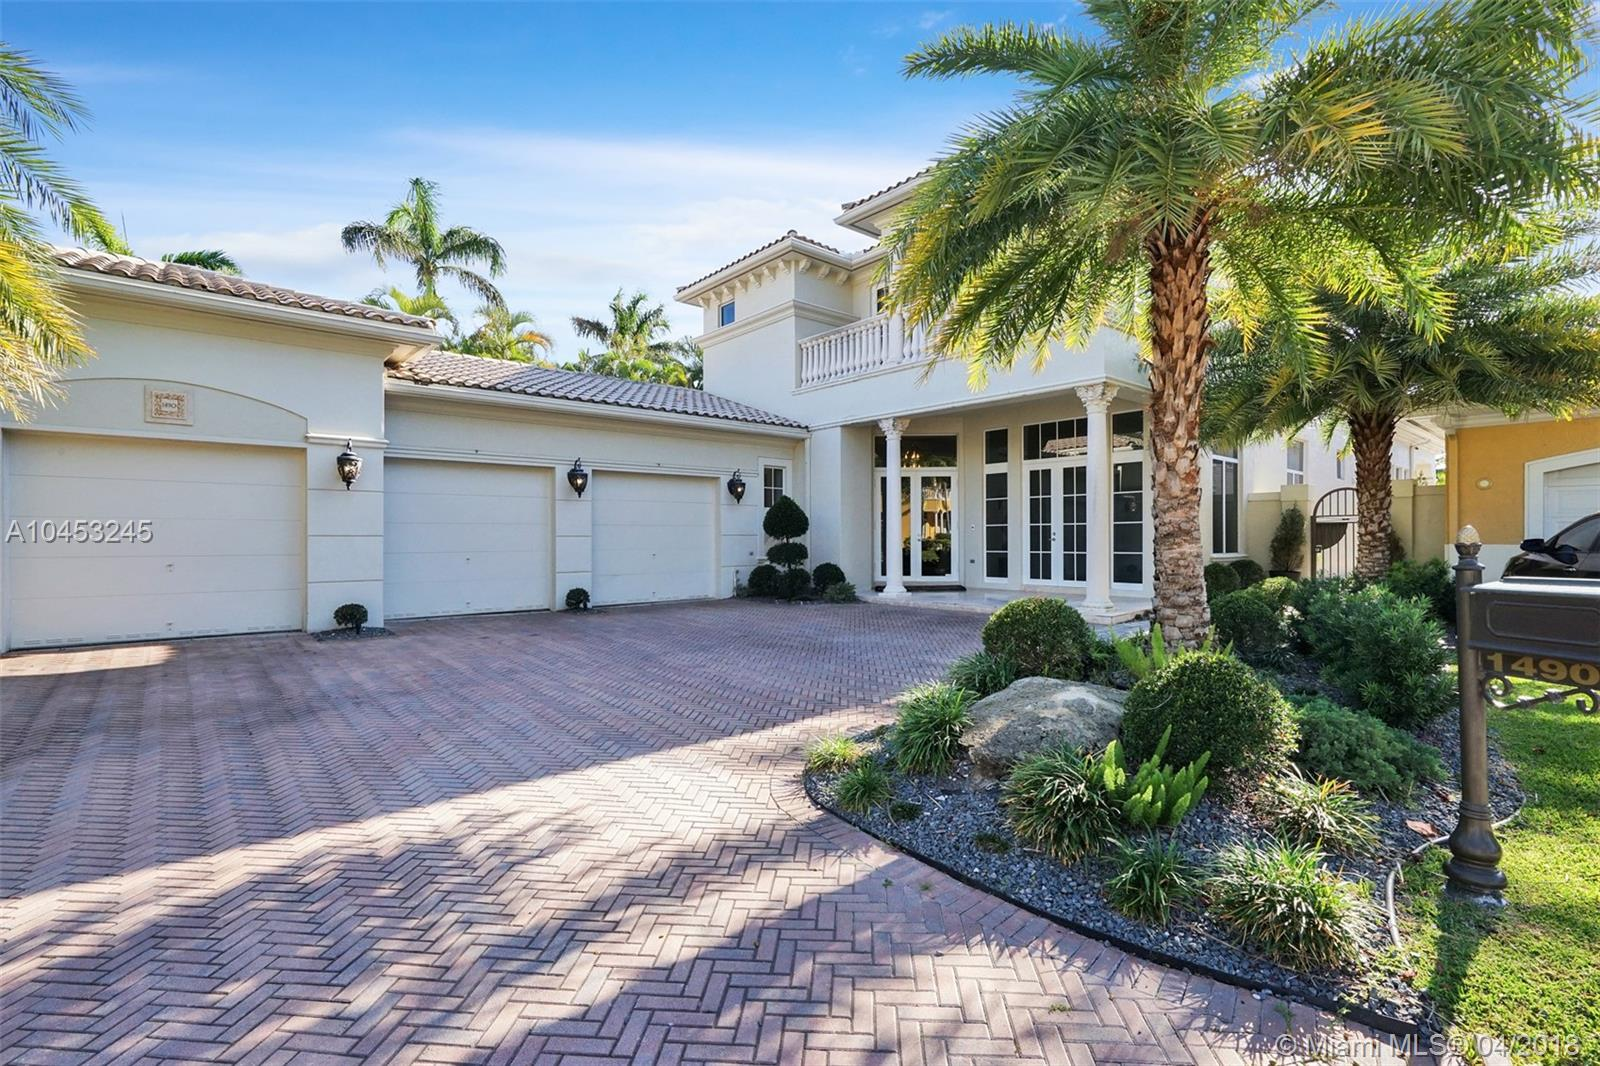 LOCATED IN THE PROMINENT COMMUNITY OF HARBOR ISLANDS, THIS UNIQUE MEDITERRANEAN RESIDENCE, BOASTS (5) BEDROOMS, (6 & ½) BATHROOMS, AND AN OFFICE SPACE. SETTLED ON A CUL-DE-SAC (A QUARTER ACRE LOT) WITHIN THE EXCLUSIVE SECTION OF COMMODORE ESTATES ALSO FEATURES AN EXTENDED AND PROTECTED DEEP WATER DOCK BEHIND A MARINA WITH ROOM FOR A 60+ FOOT YACHT ACCESSIBLE TO THE INTRACOASTAL WITH ADAPTABLE  BRIDGES FOR CONVENIENCE. THIS IMMACULATE PROPERTY FEATURES A LIVING ROOM WITH SPECTACULAR 22 FOOT CATHEDRAL WINDOWS, NATURAL LIGHTING, AN AUTHENTIC STONE FIREPLACE, IMPACT GLASS THROUGHOUT WITH TRIPLE CROWN MOLDINGS. WITH BEAUTIFUL MARBLE INLAYS SOURCED FROM SATURNIA, TUSCANY AND DARK CHERRY WOOD FLOORING IN EVERY ROOM. EQUIPPED WITH PREMIUM VIKING PROFESSIONAL CHEF APPLIANCES.